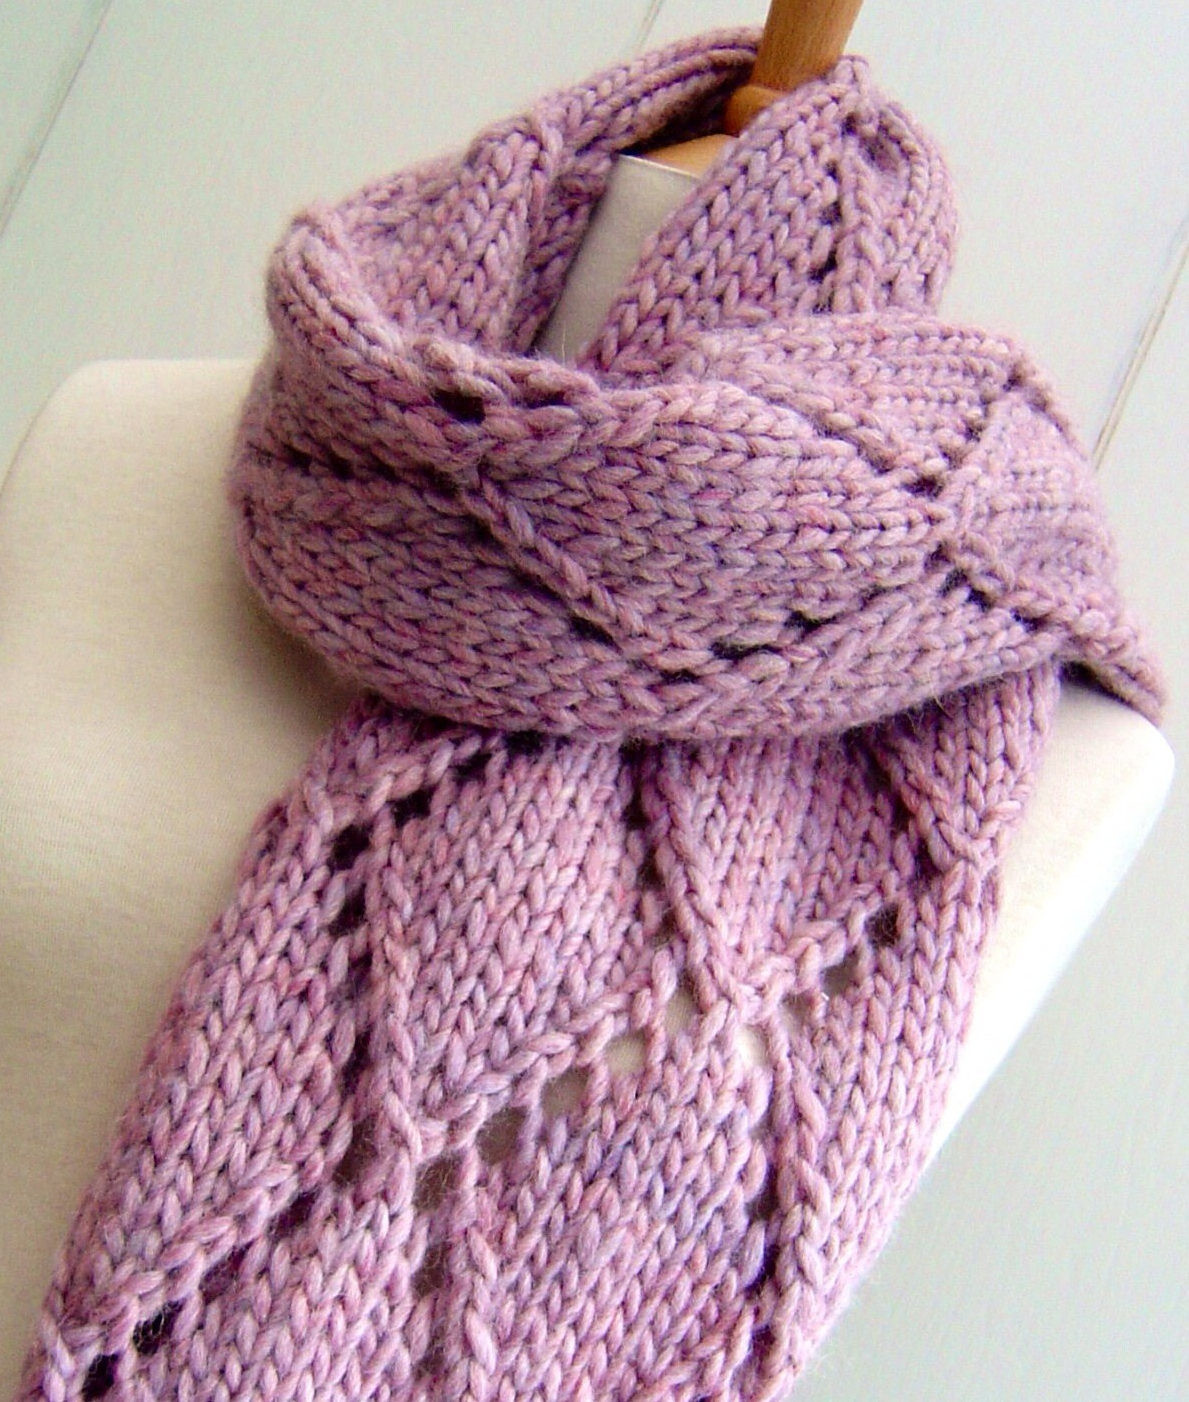 Easy Scarf Knitting Patterns Elegant Easy Scarf Knitting Patterns Of Attractive 48 Ideas Easy Scarf Knitting Patterns